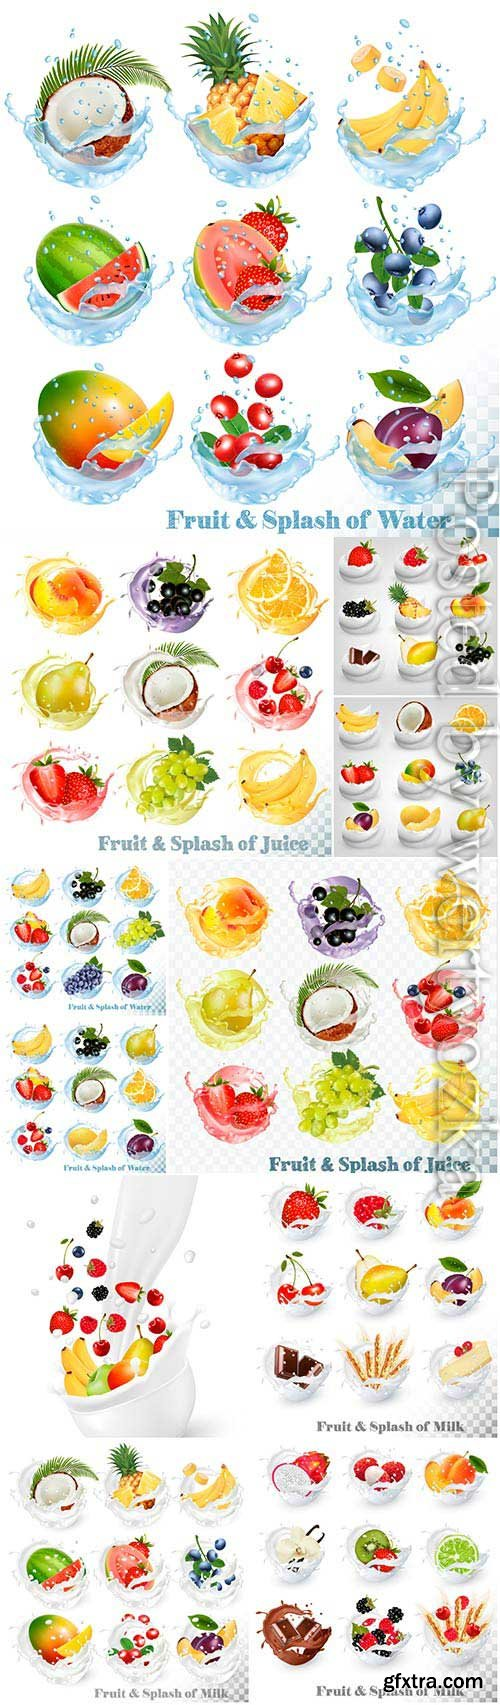 Fruits and berries in water and milk in vector